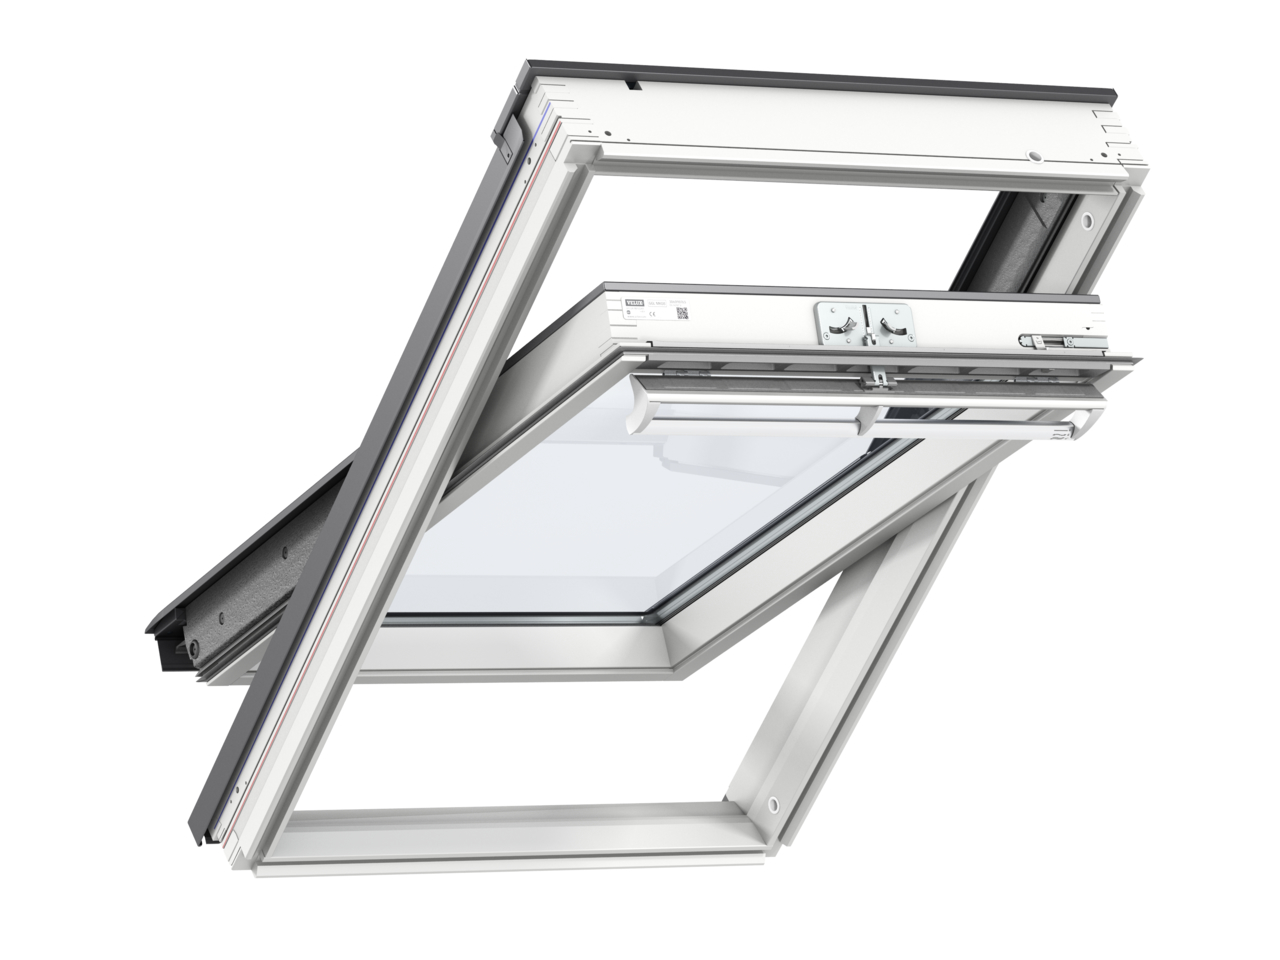 Velux GGL PK08 940 x 1400mm Centre Pivot Standard 70Pane Roof Window - White Painted